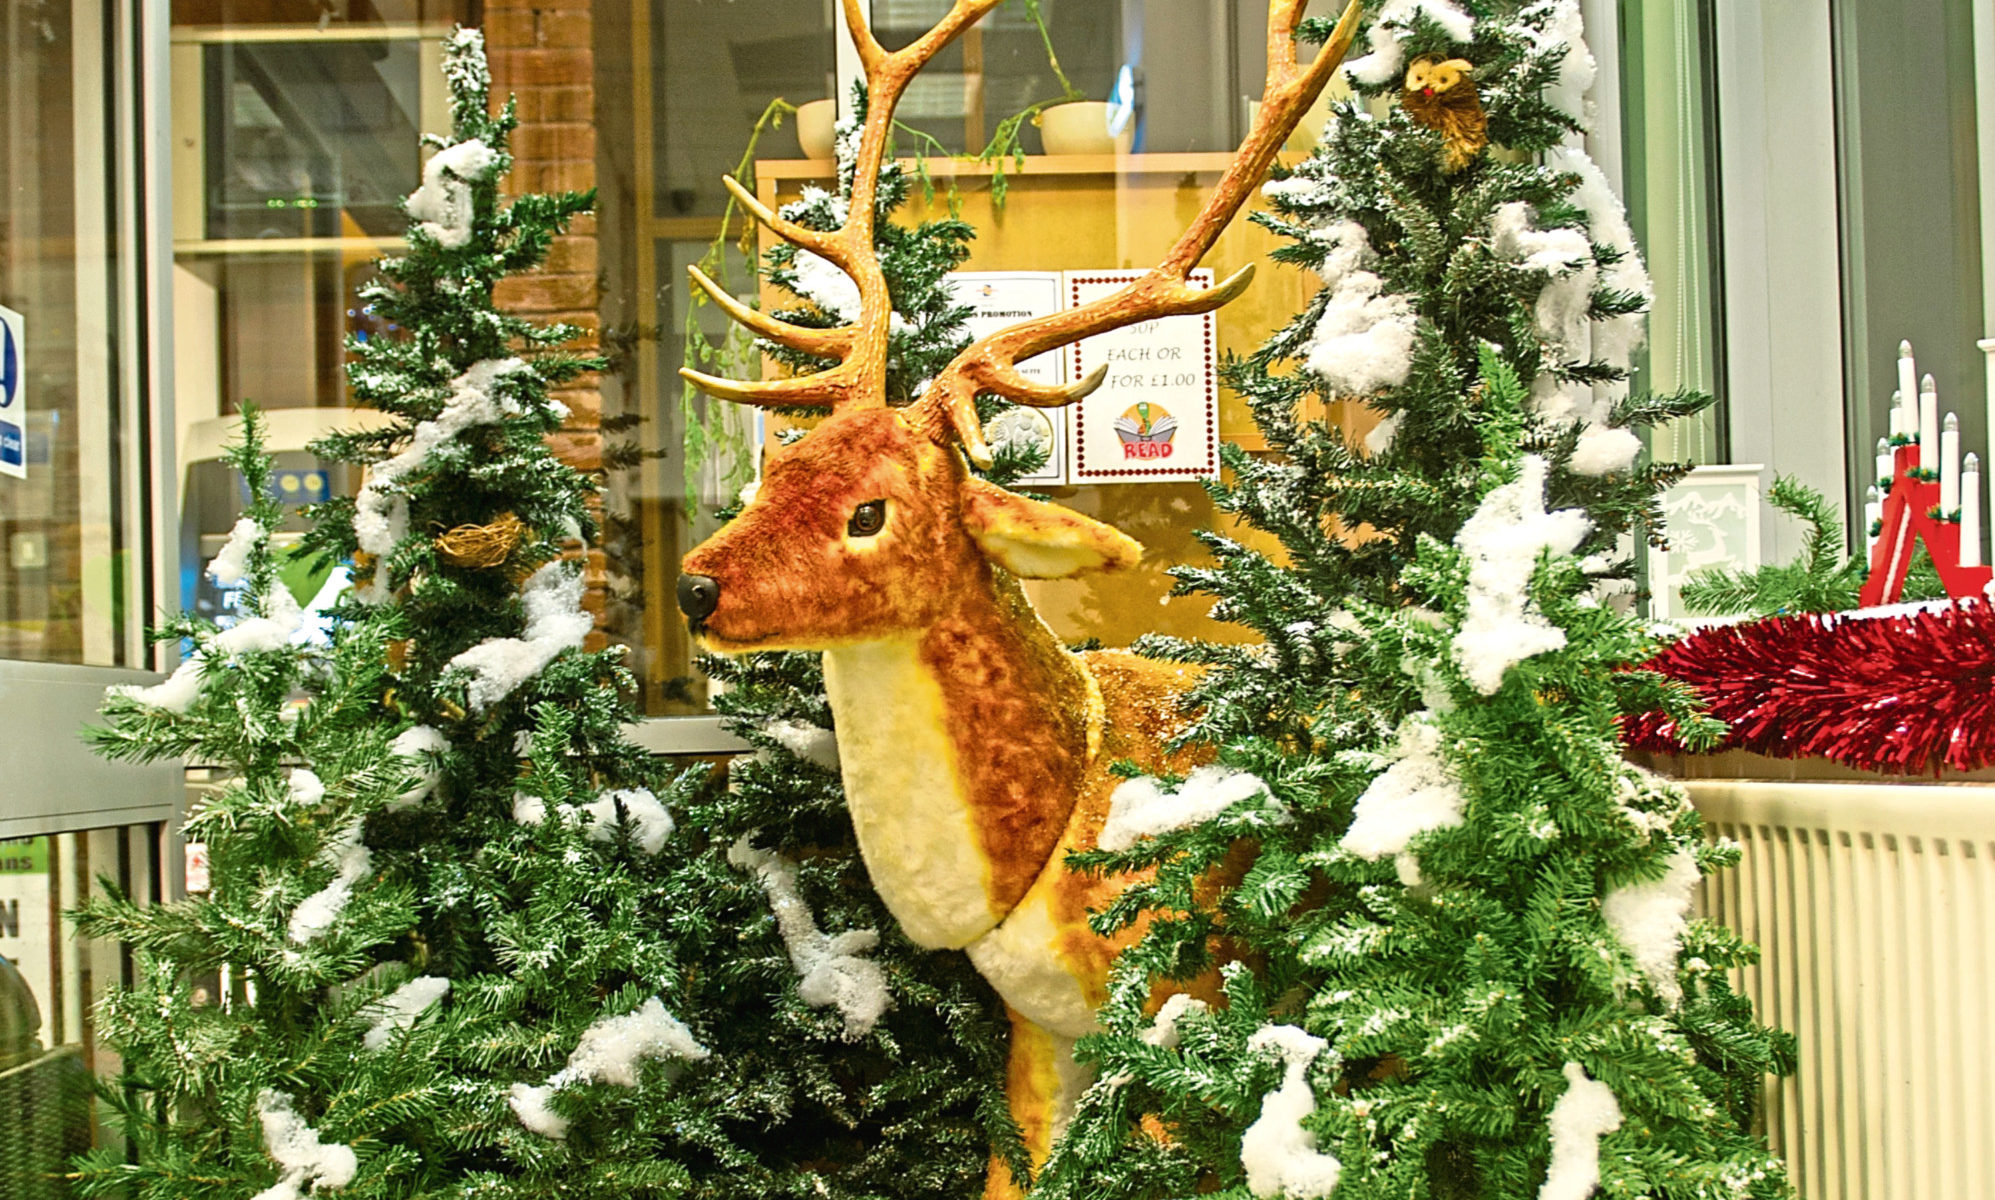 One of the Christmas Wonderland displays